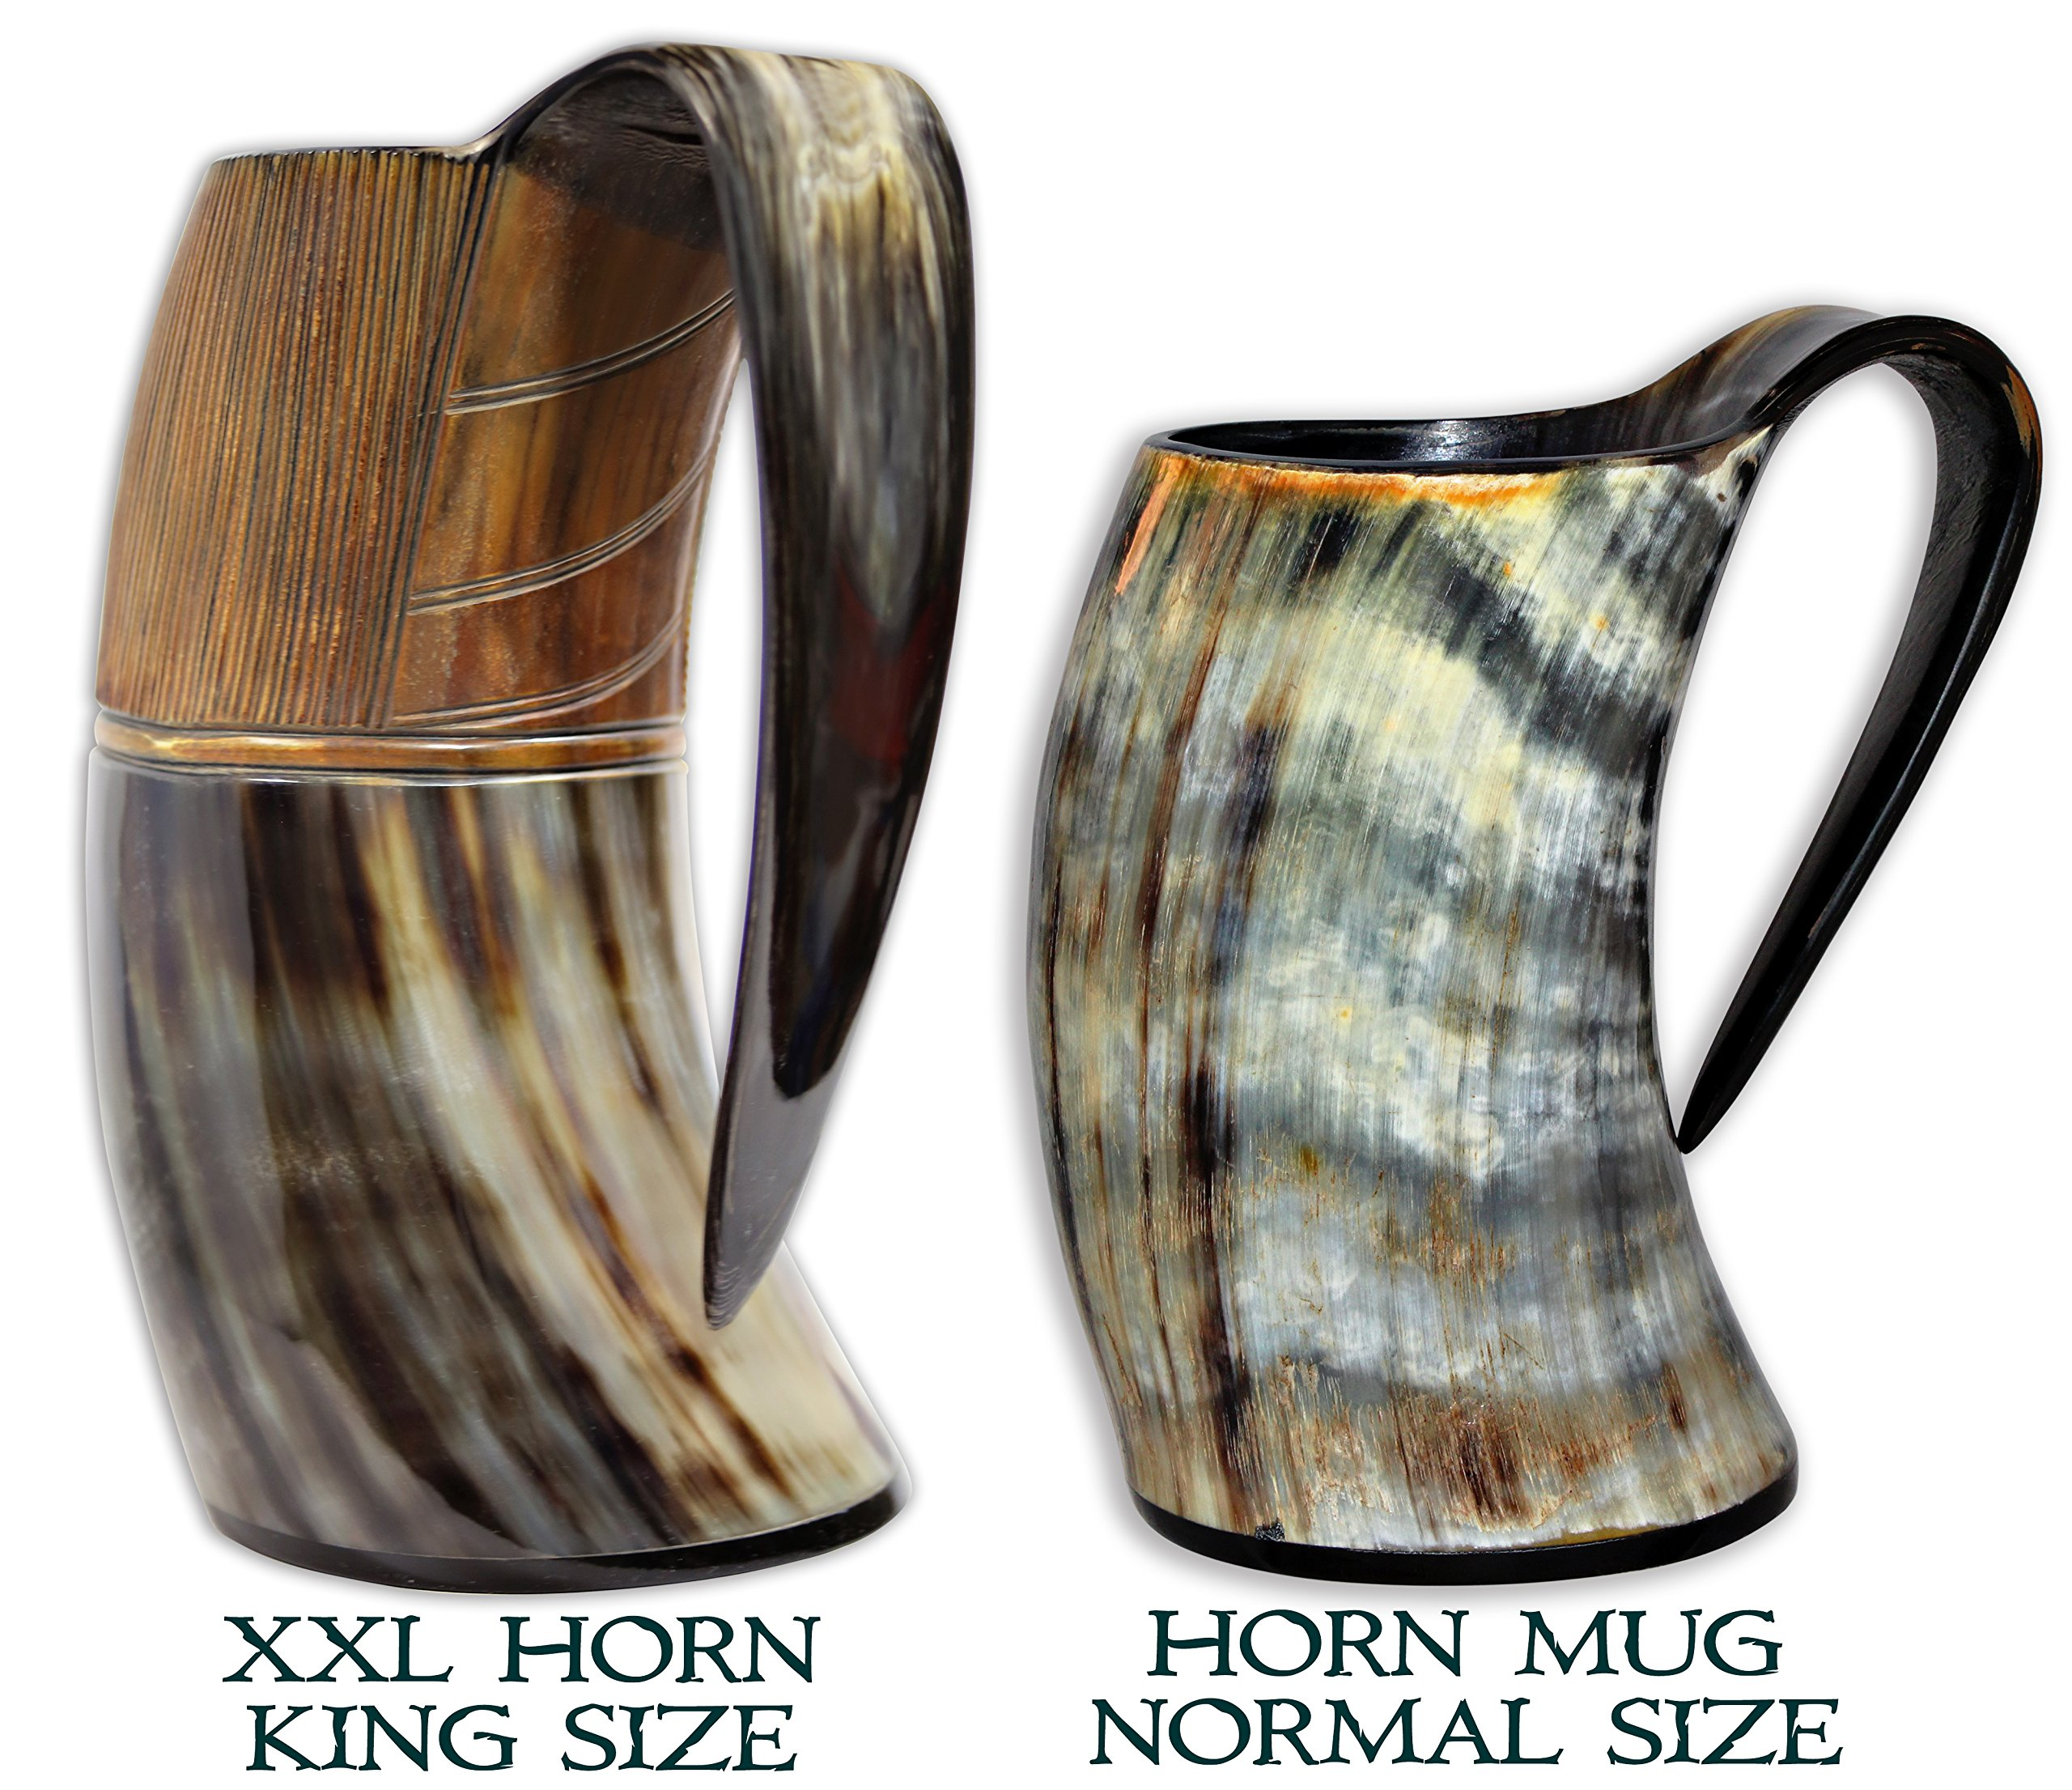 XXL King Size Authentic Natural Style Viking Buffalo Drinking Pitcher / Mug - Authentic Medieval Inspired Mug/Pitcher (42 oz) (Lighter Color) by Valhalla Drinkware (Image #2)